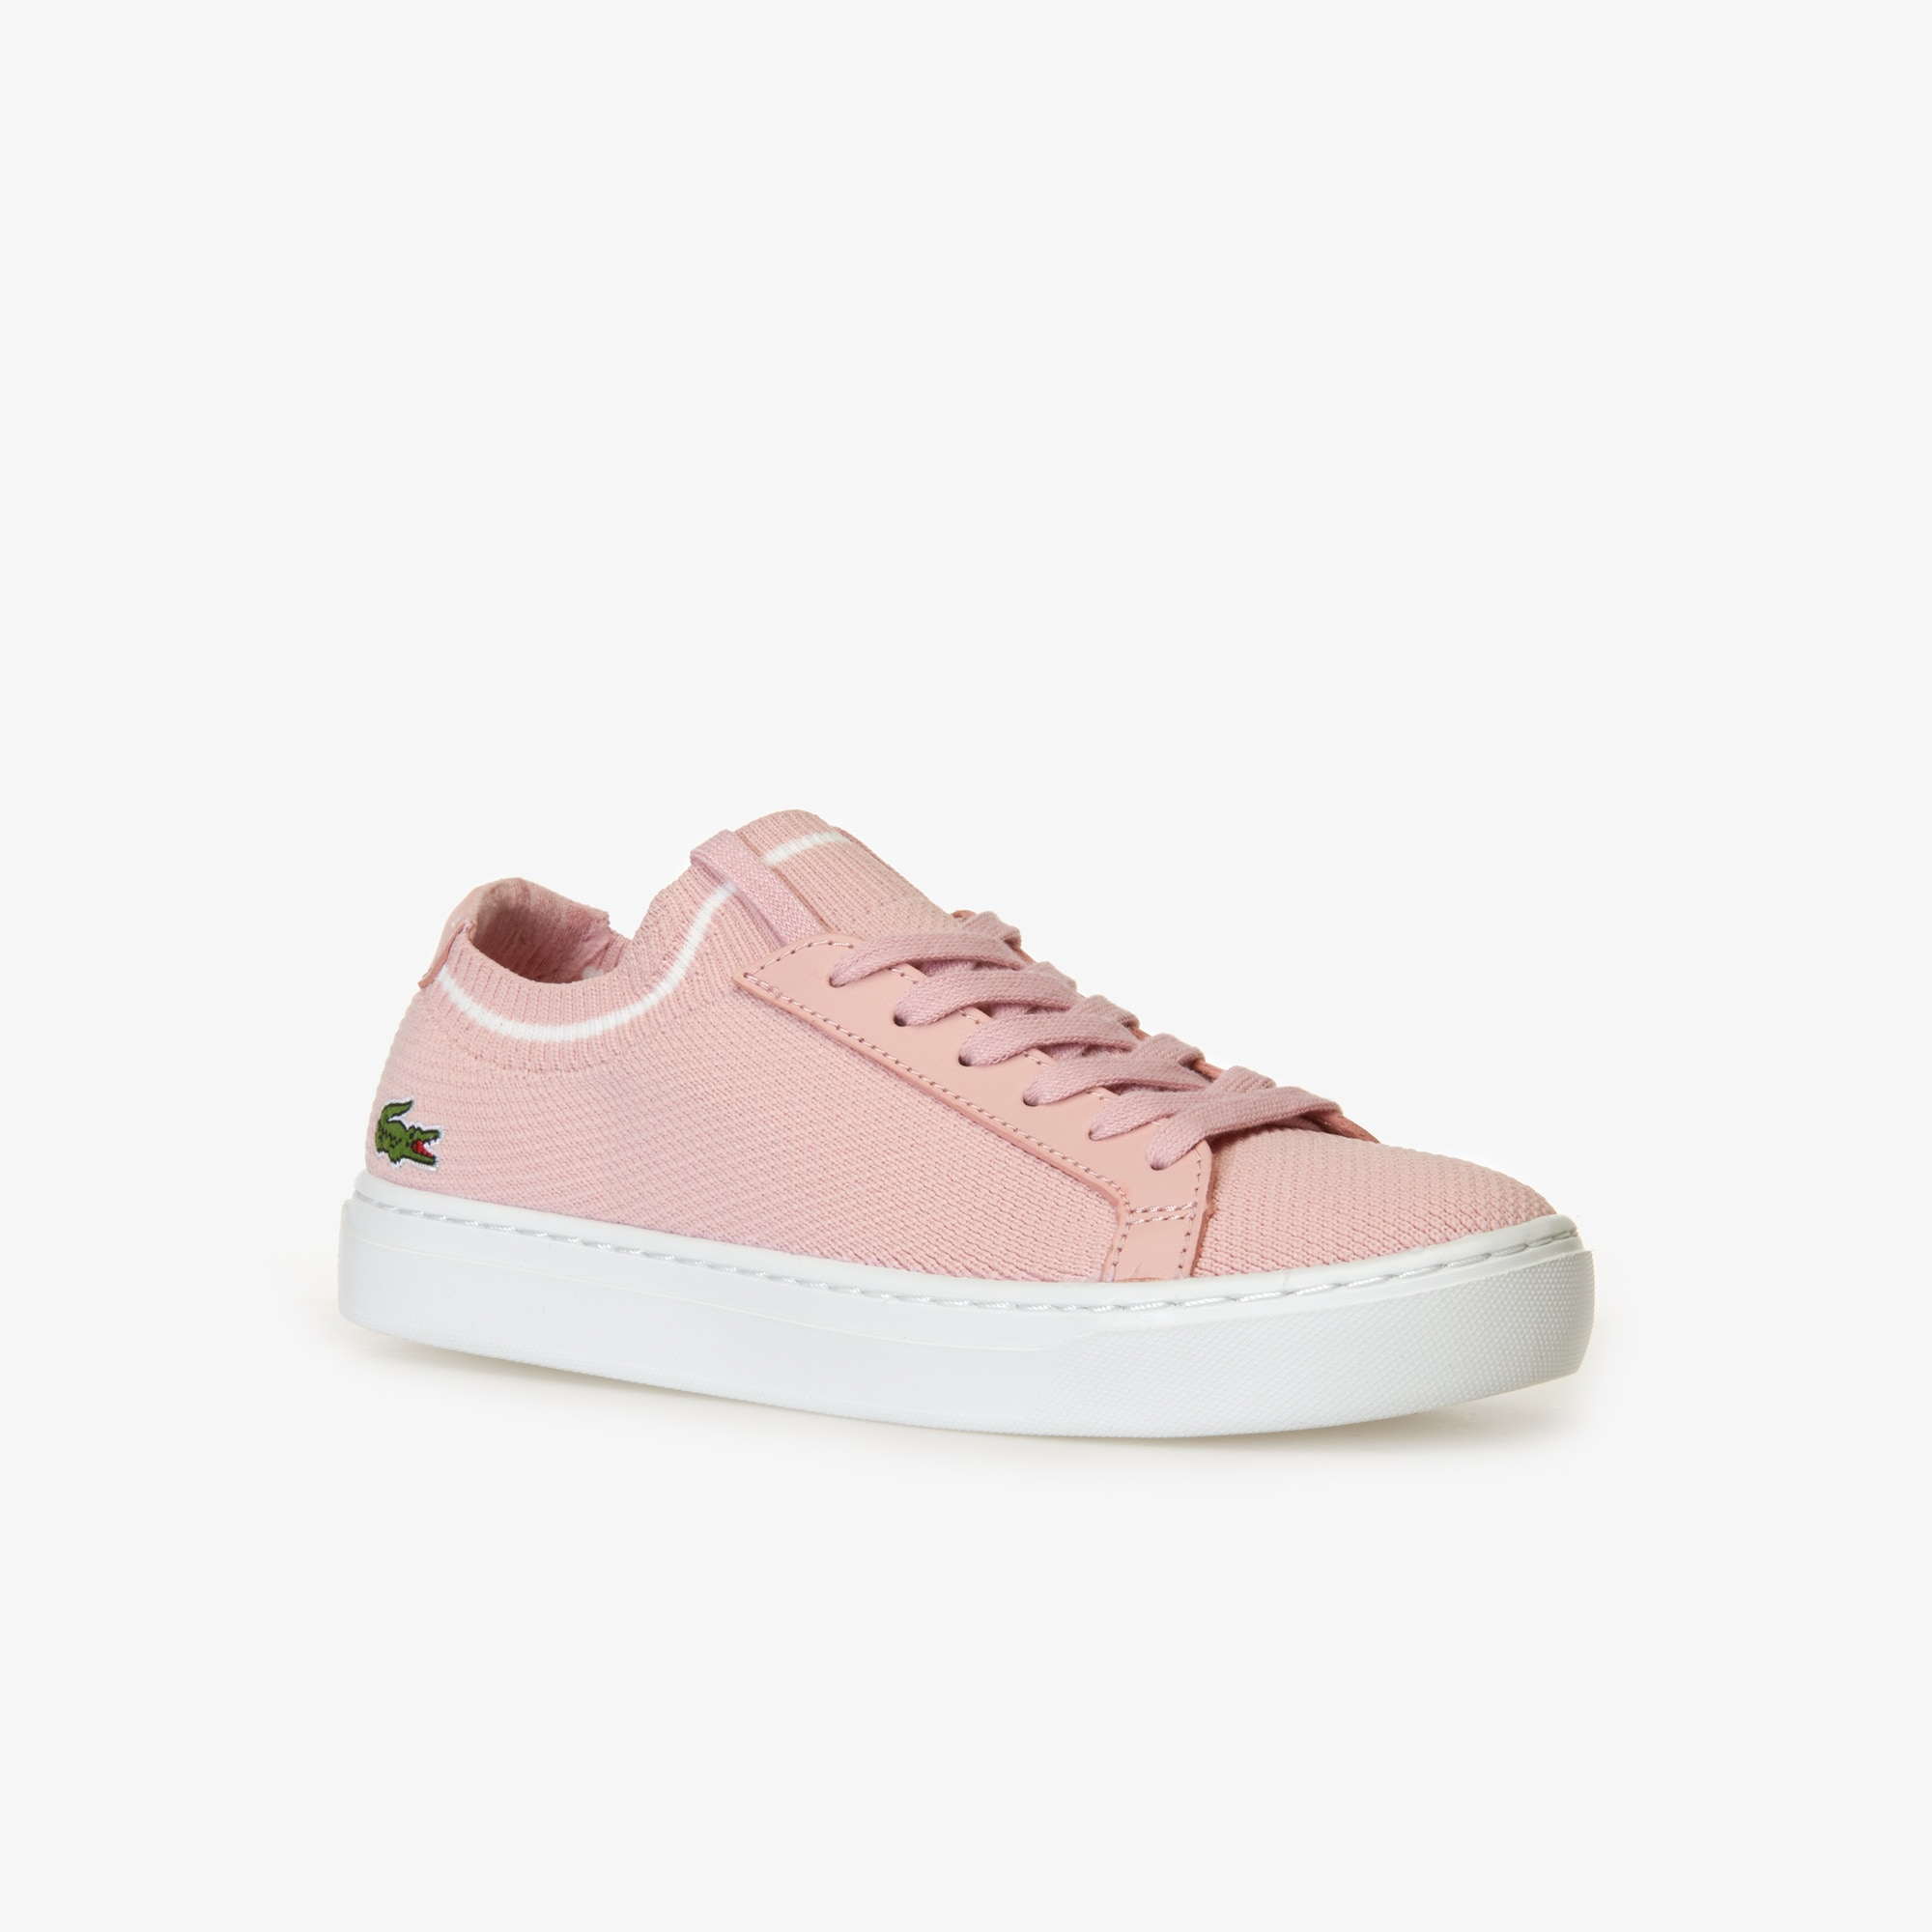 8fcb957618 Polos, chaussures et maroquinerie | LACOSTE